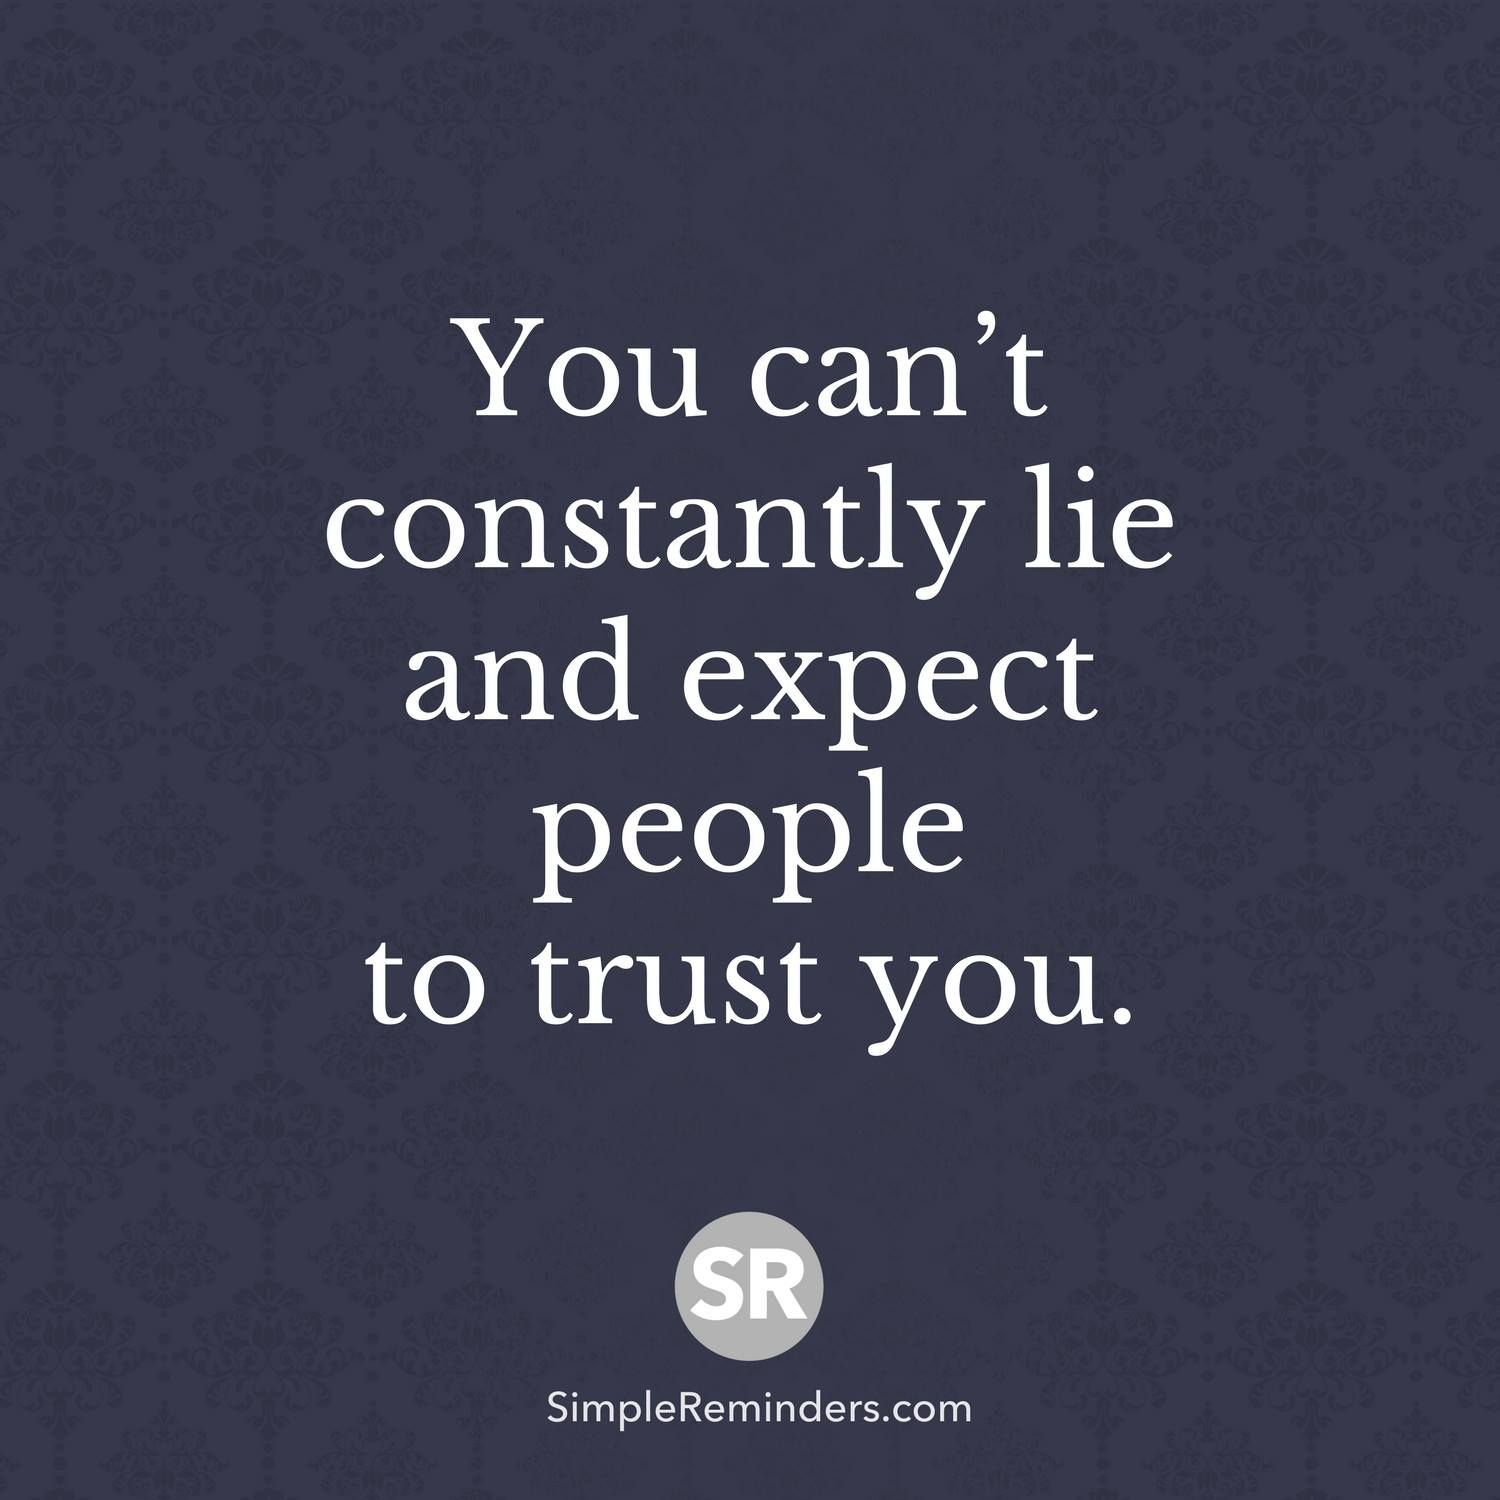 Dishonesty Quotes: You Can't Constantly Lie And Expect People To Trust You